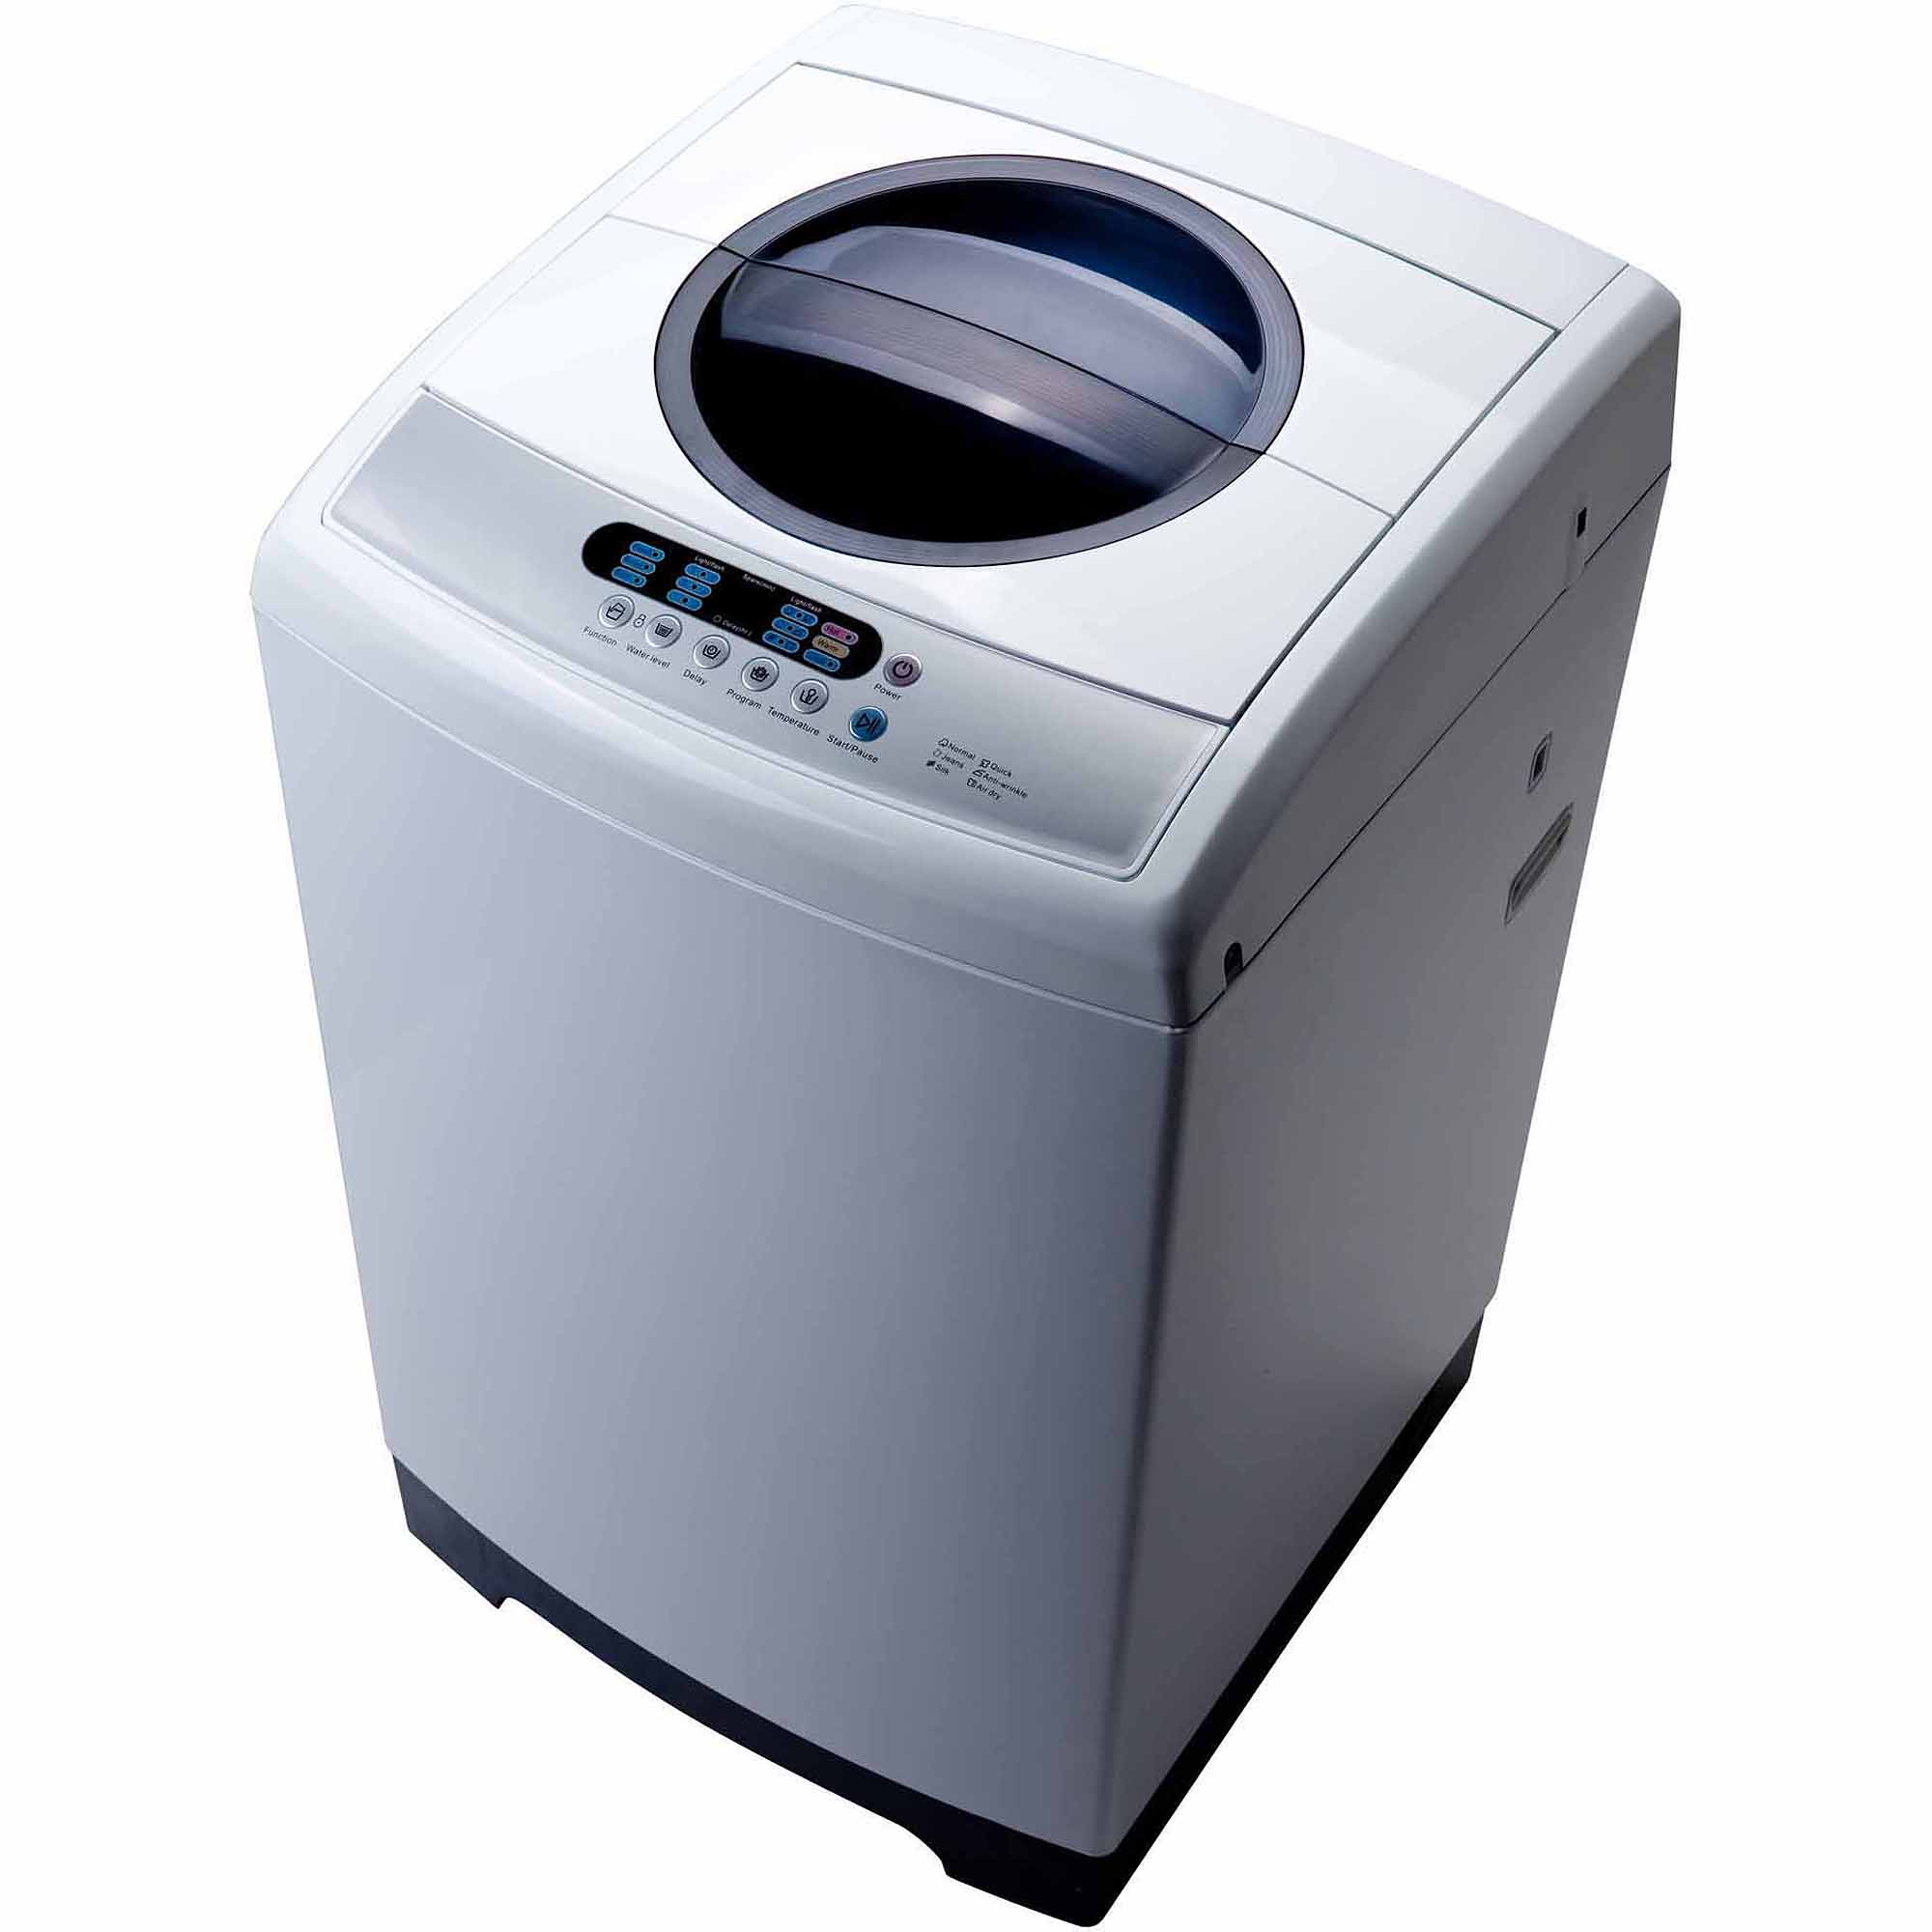 RCA 1.6 cu ft Portable Washer, White